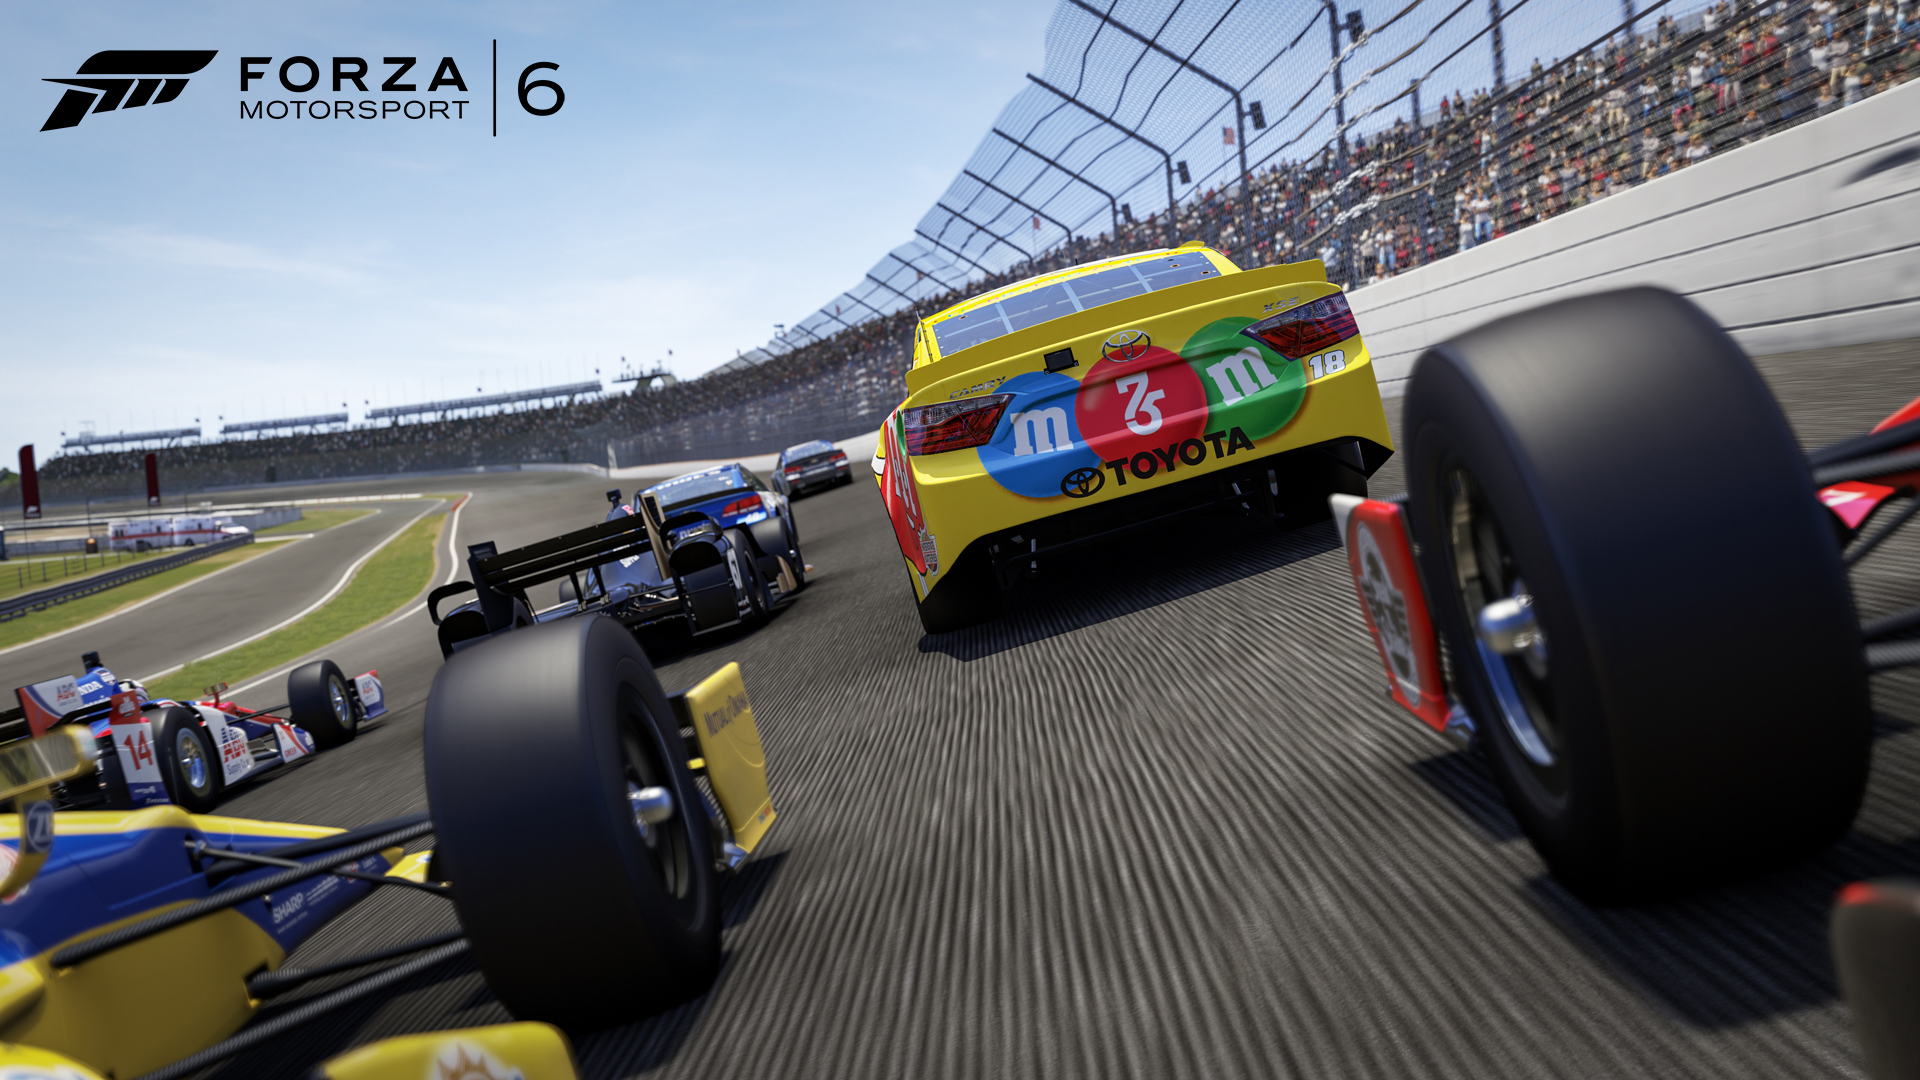 Chip And Dale Wallpaper Hd Forza Motorsport Forza Motorsport 6 Nascar Expansion